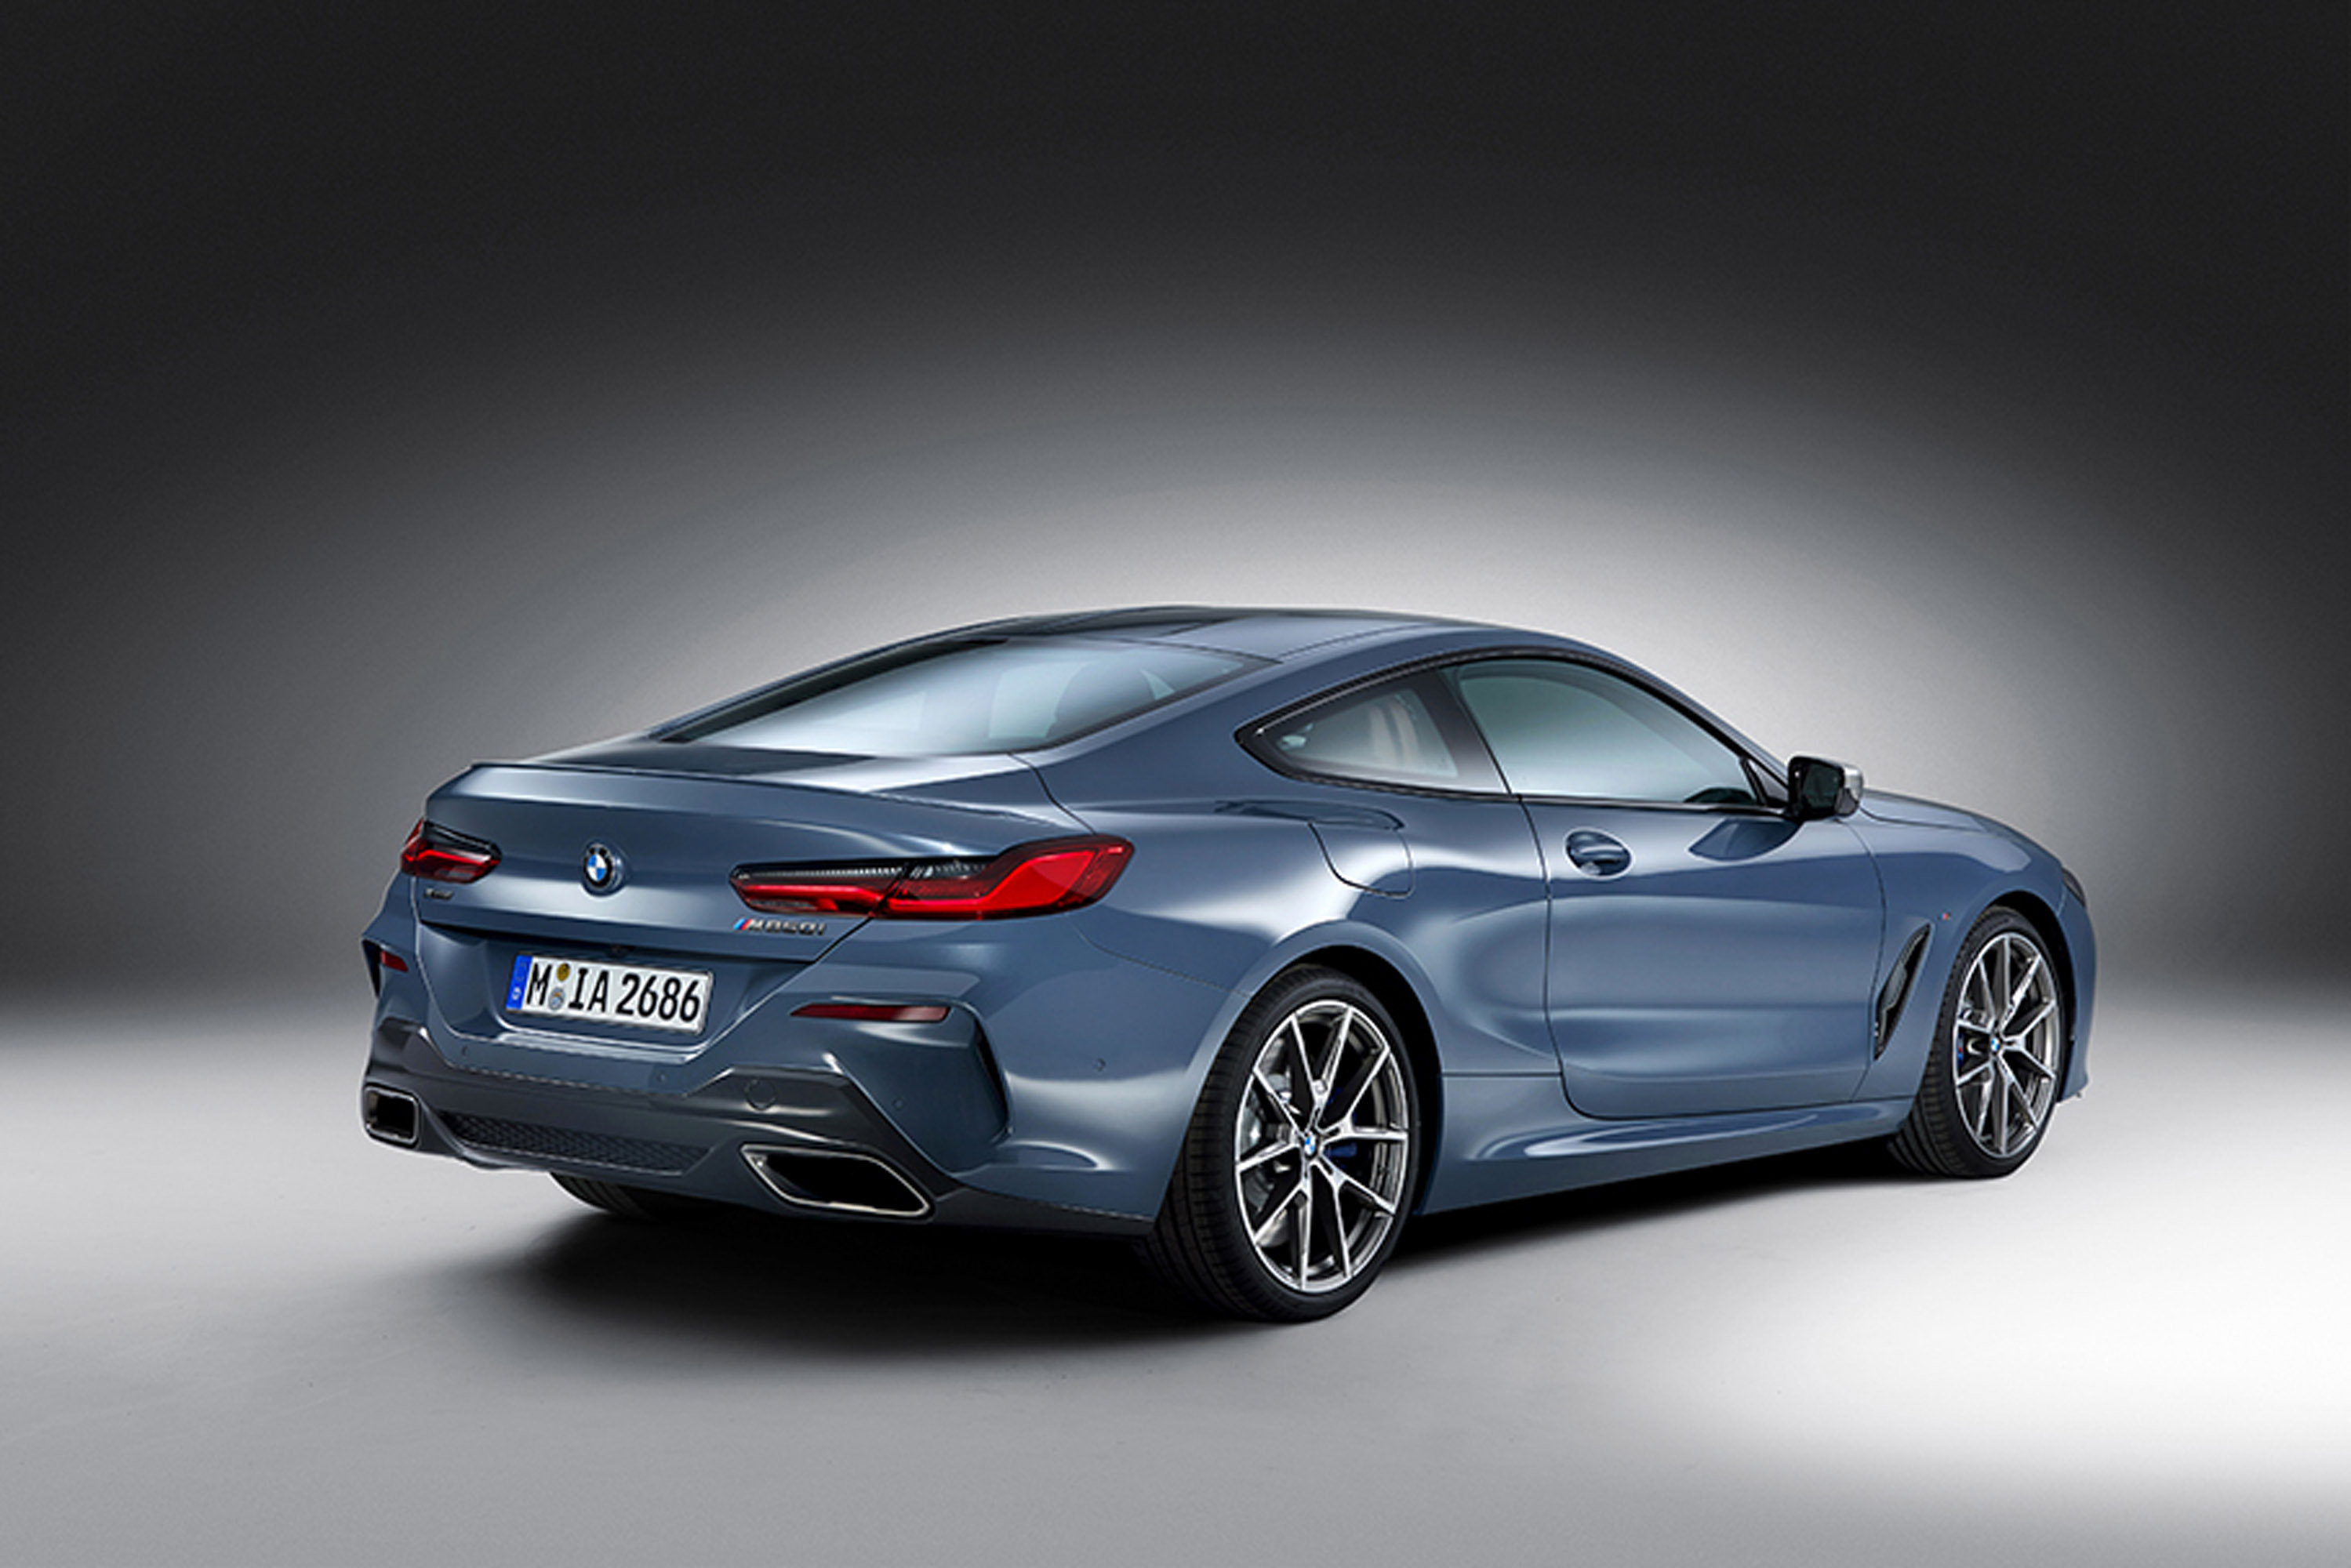 2019 Bmw 850i Xdrive Coupe Picture 136397